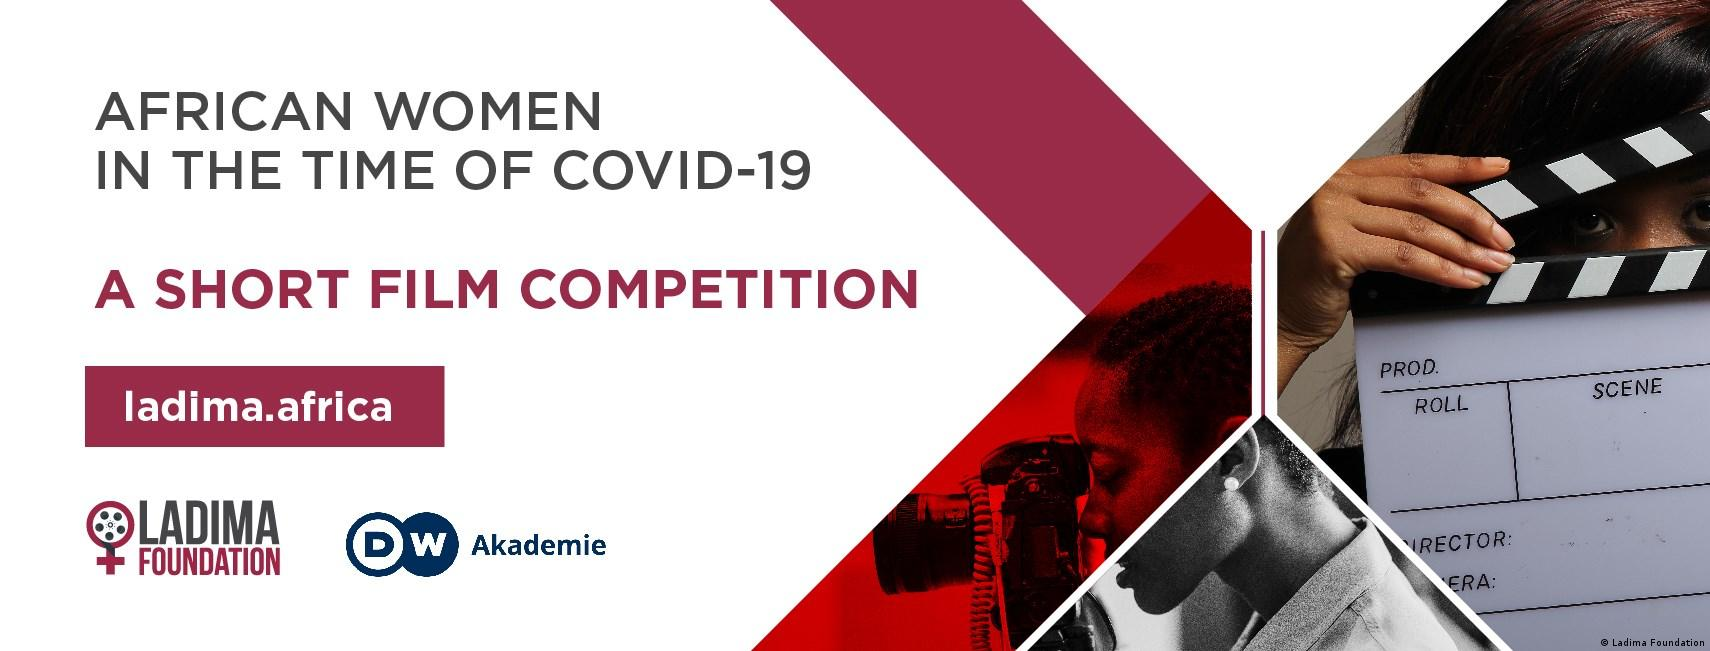 DW Akademie A Short Film Competition